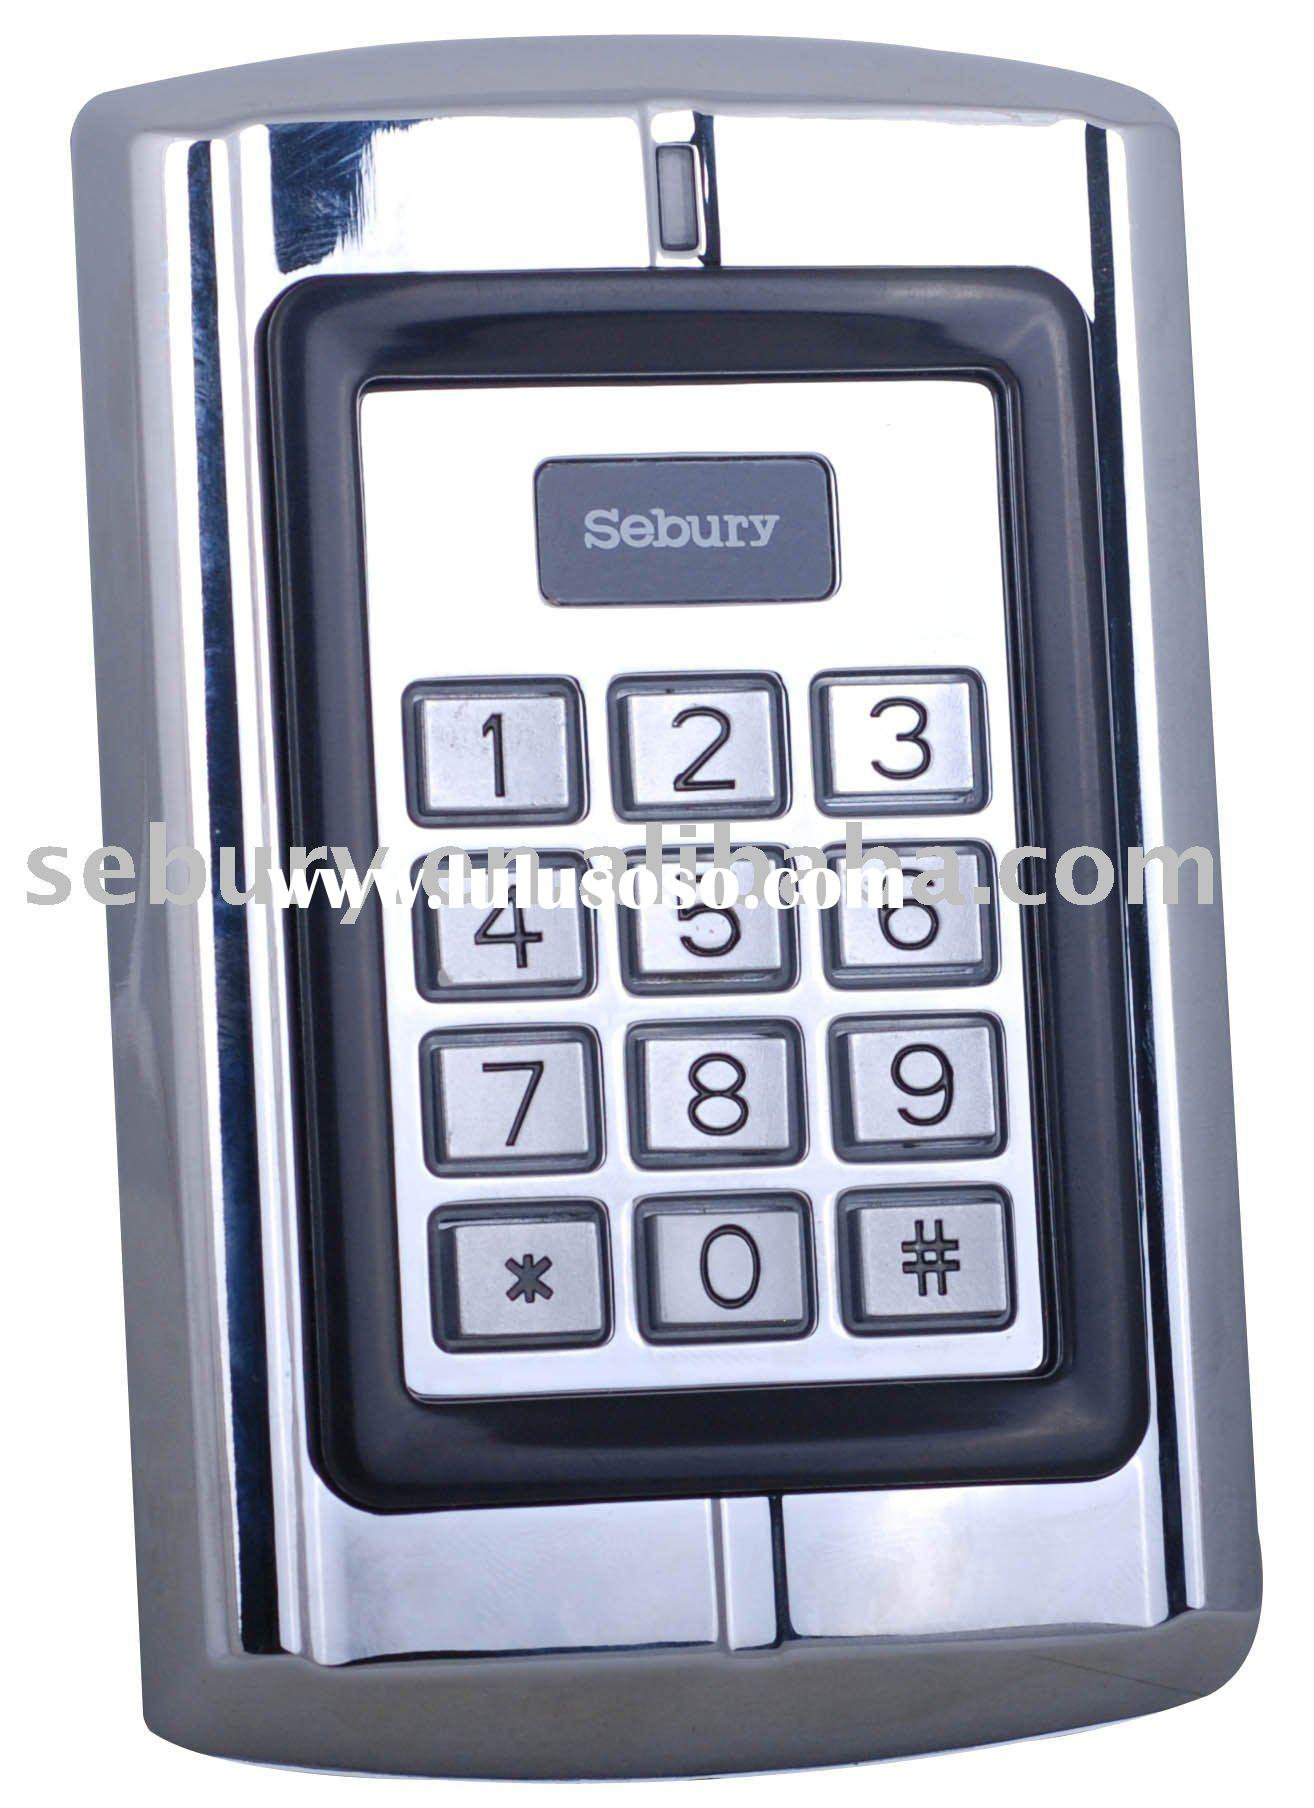 Metal Keypad Access Control System / RFID Card Reader BC-2010